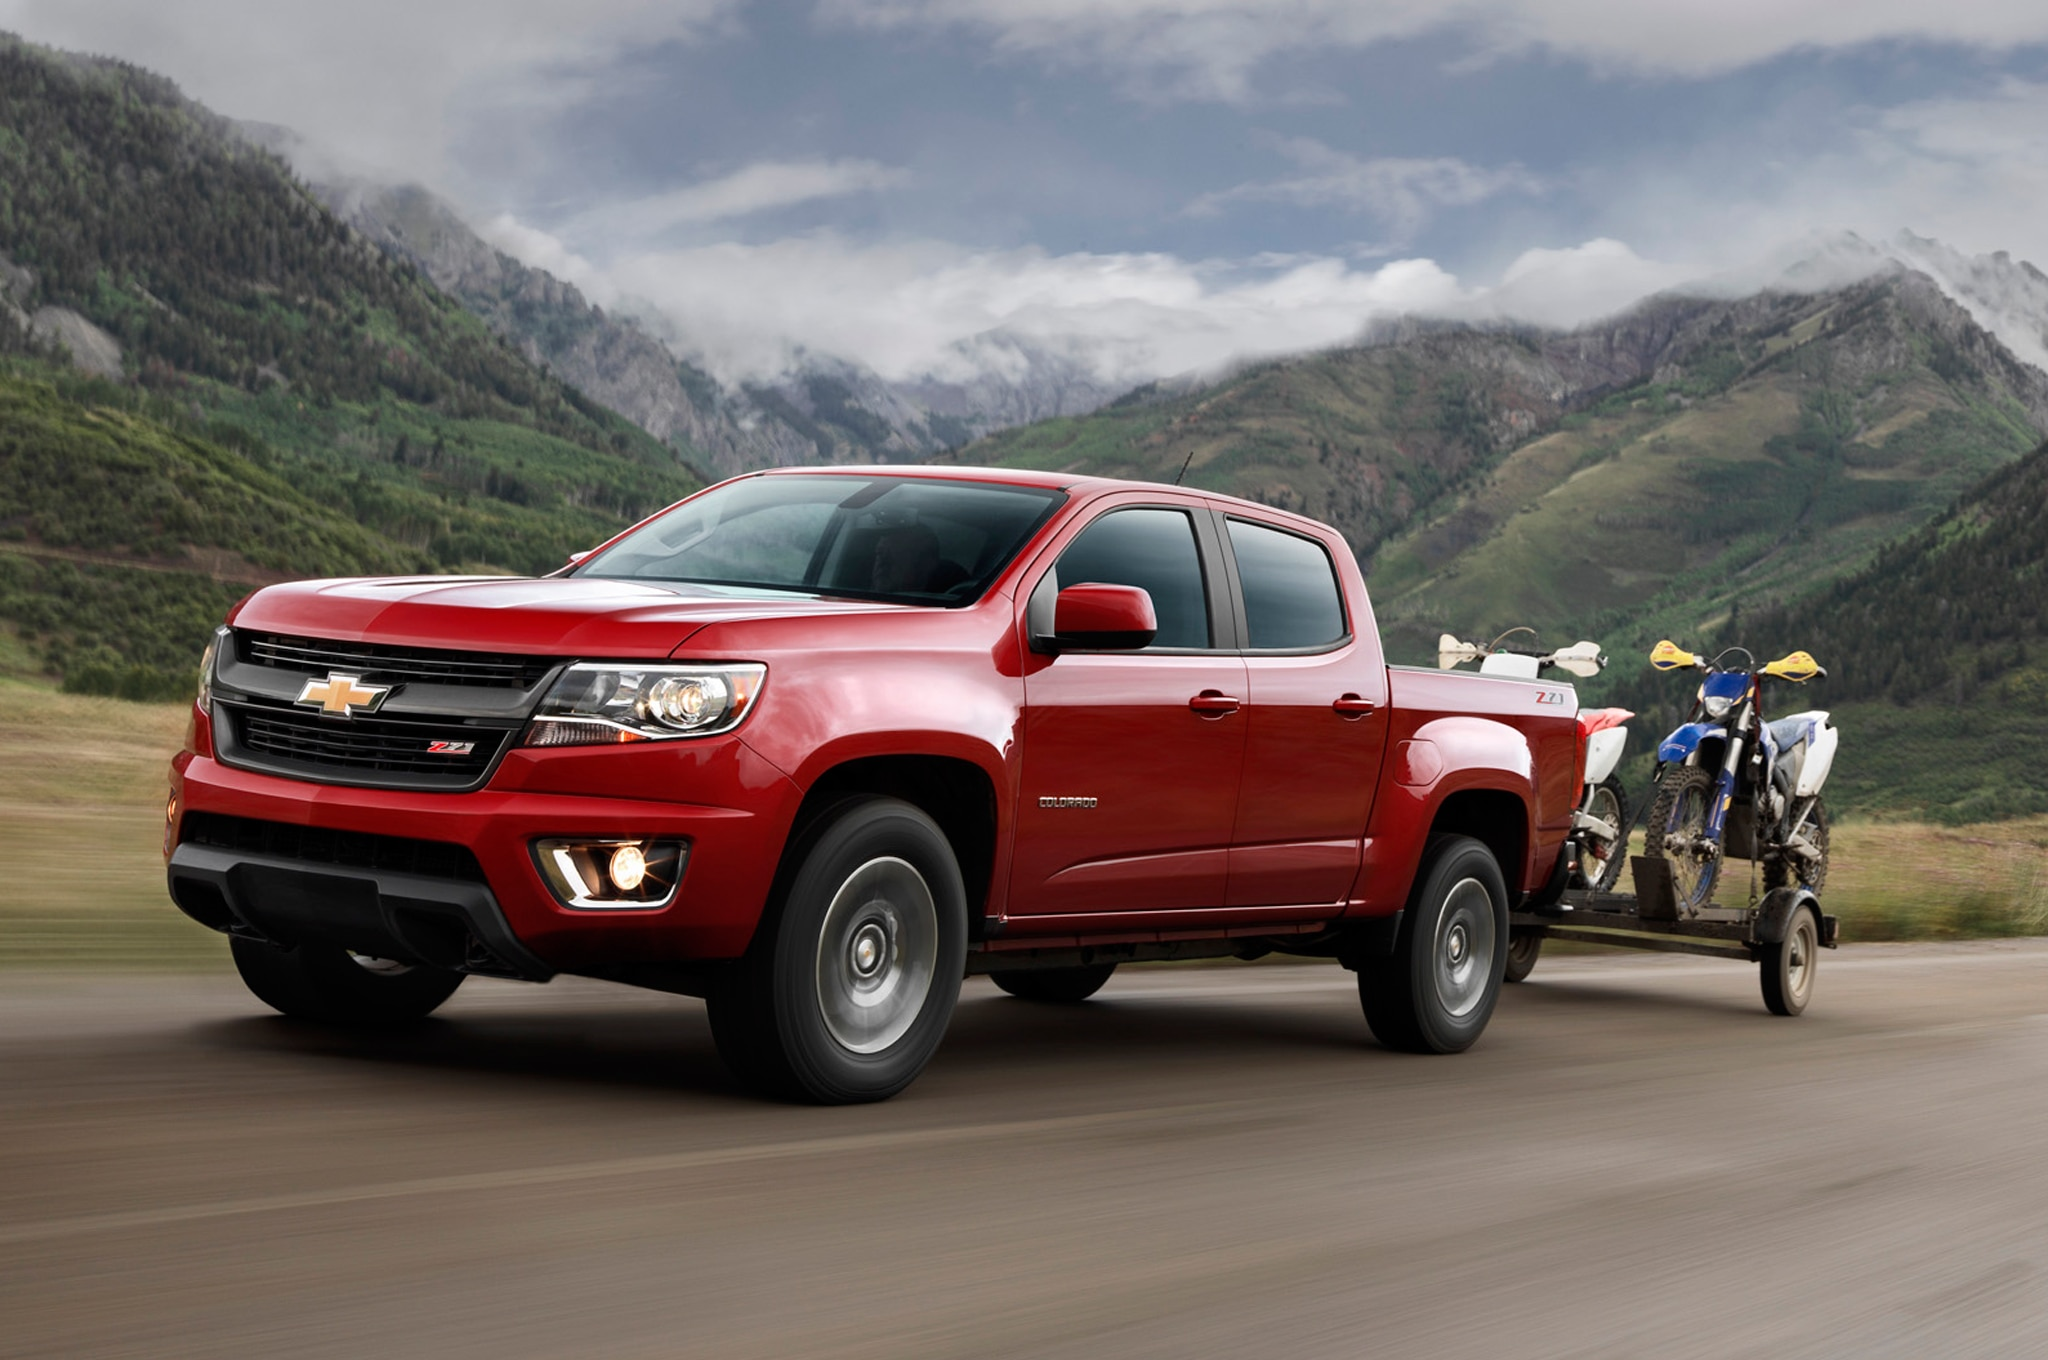 2015 Chevrolet Colorado Z71 towing1